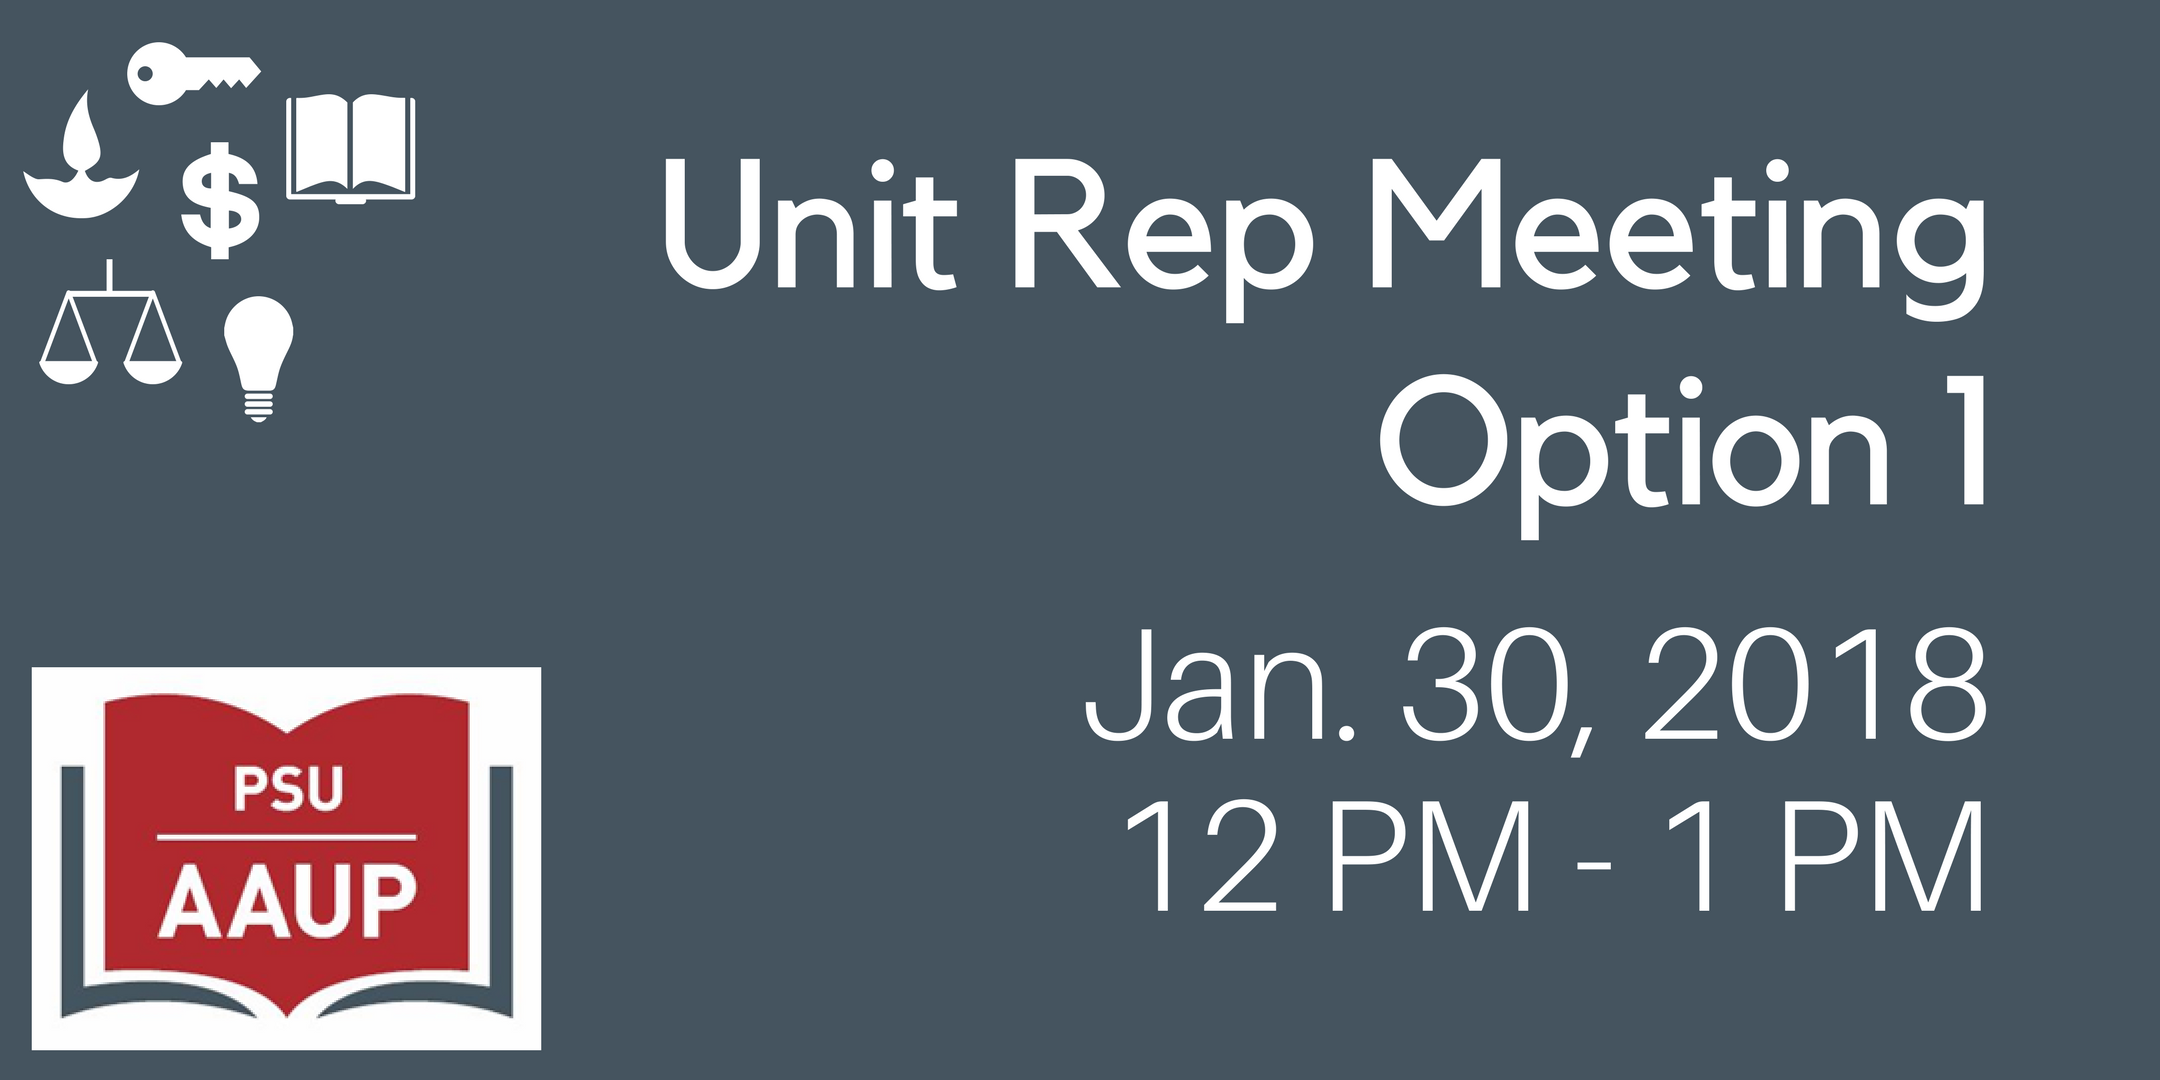 Unit Rep Meeting Option 1